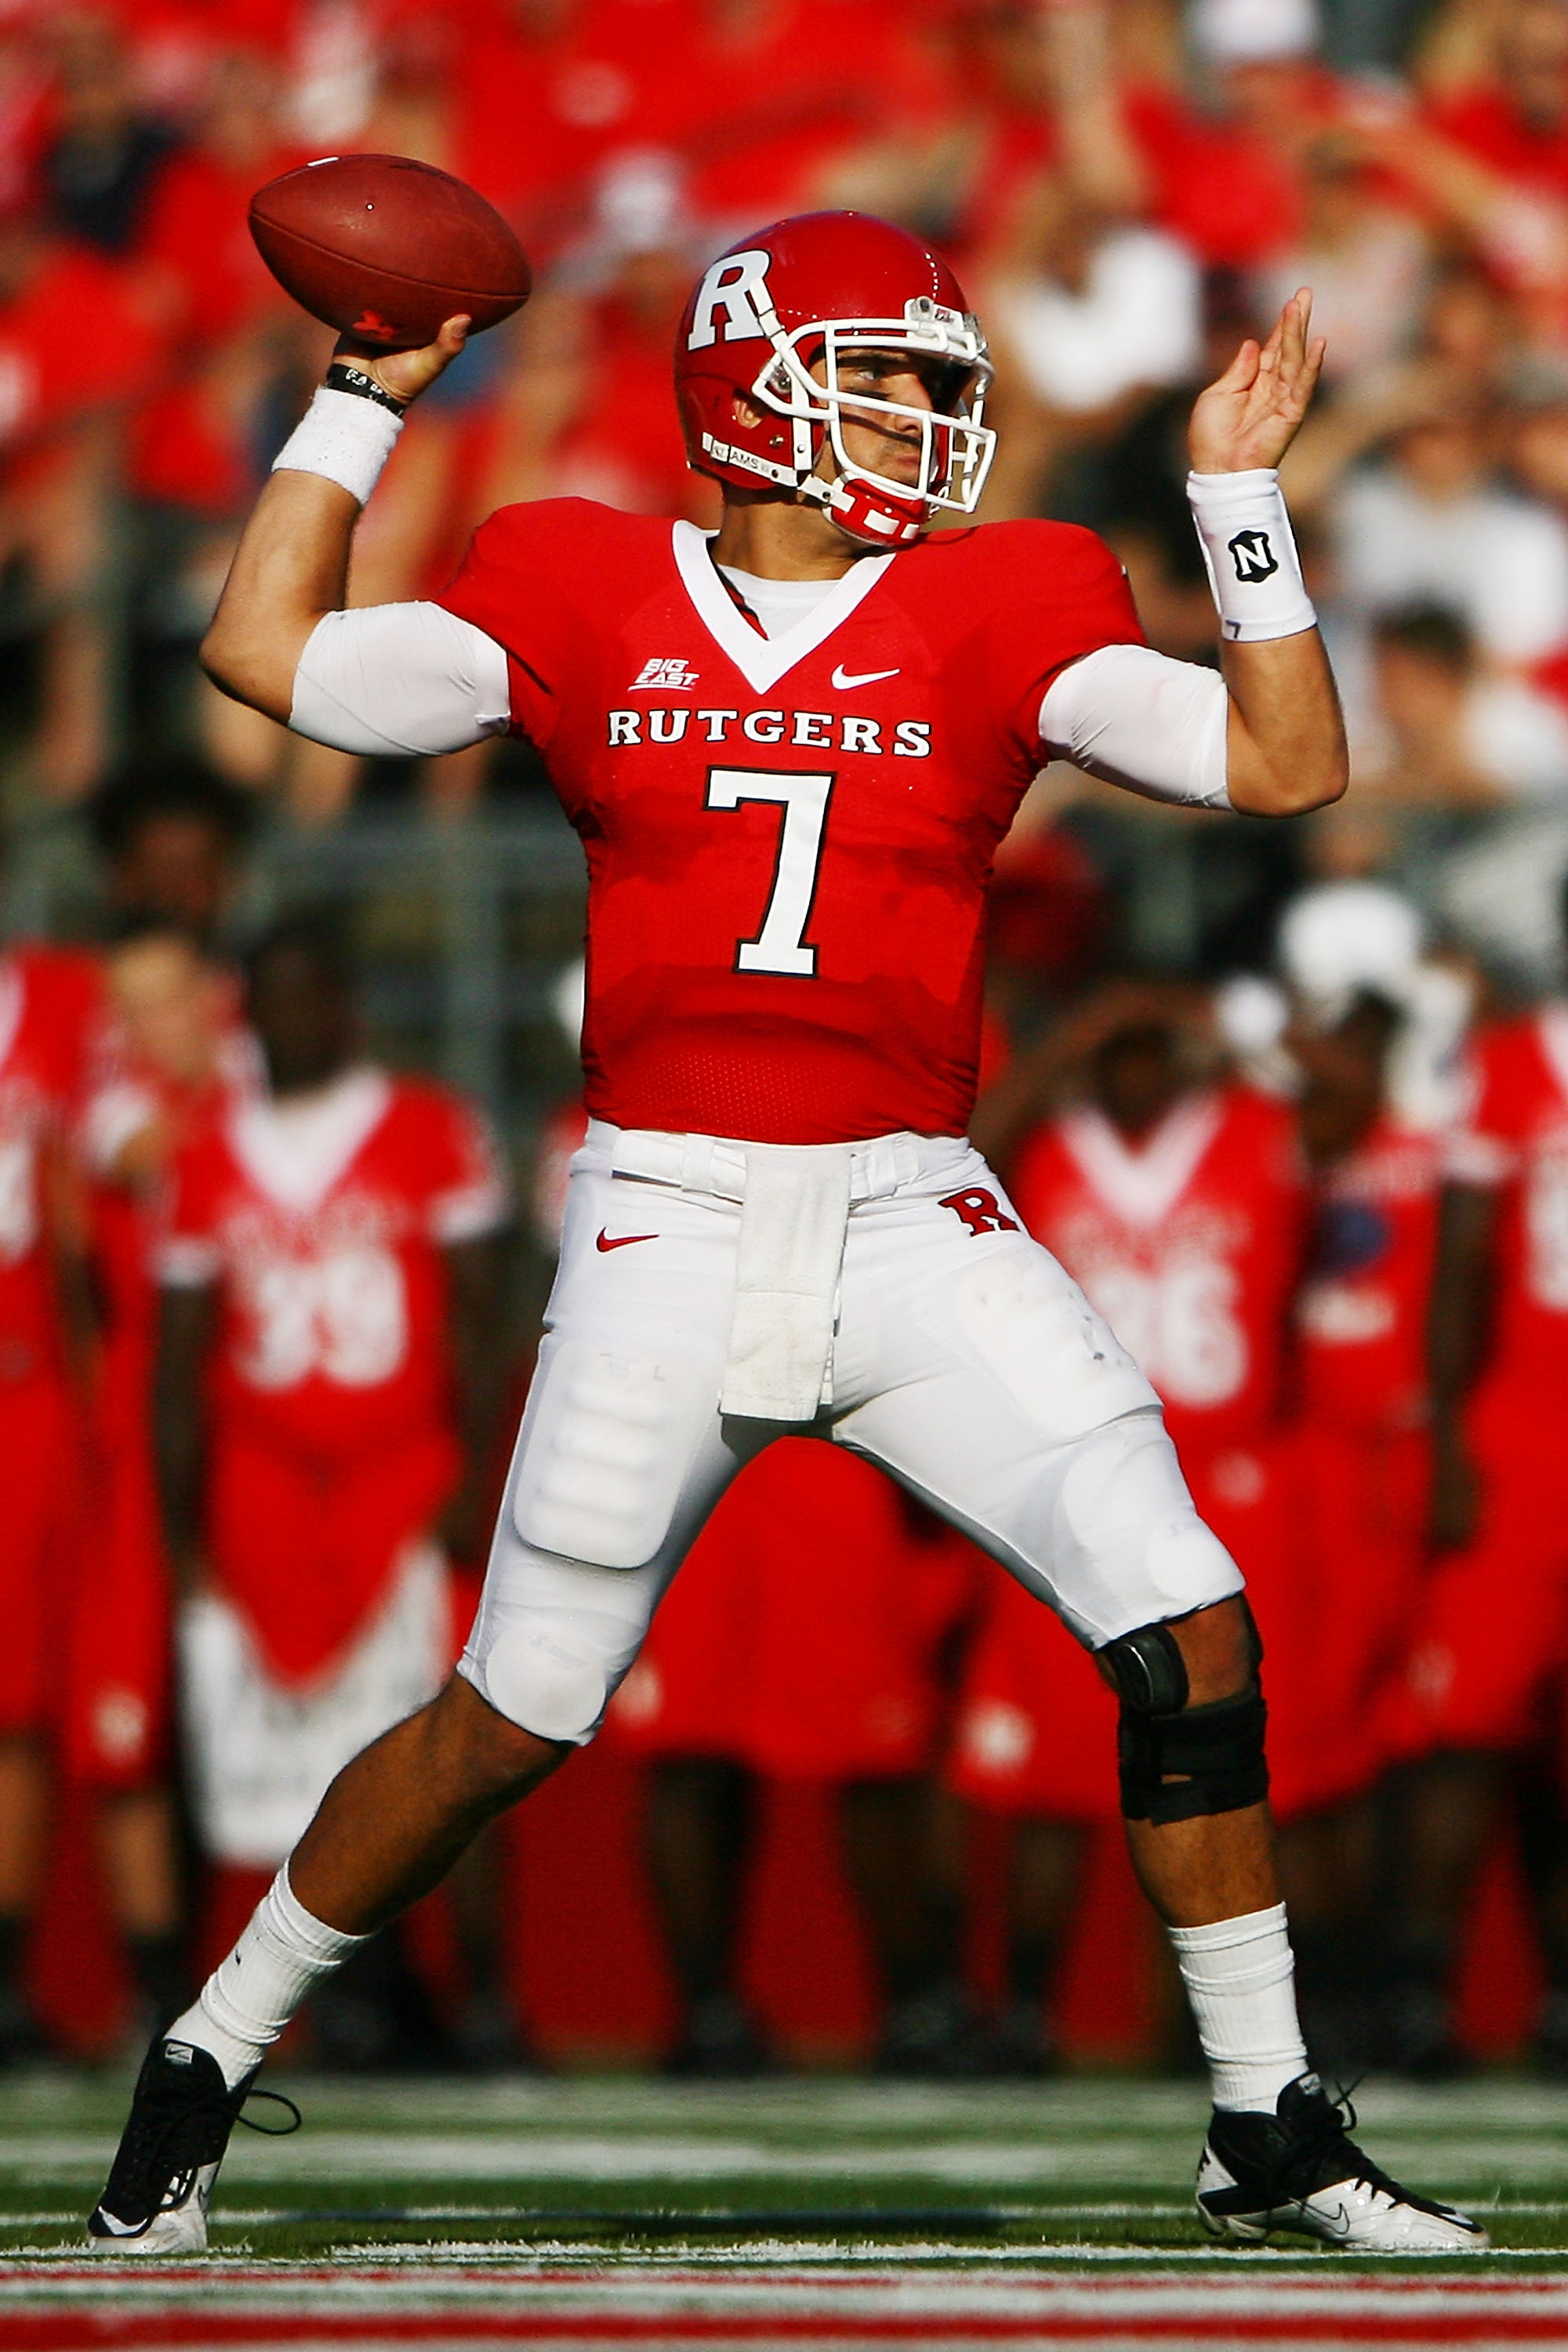 NEW BRUNSWICK, NJ - SEPTEMBER 25:  Tom Savage #7 of the Rutgers Scarlet Knights passes against the North Carolina Tar Heels at Rutgers Stadium on September 25, 2010 in New Brunswick, New Jersey.  (Photo by Andrew Burton/Getty Images)